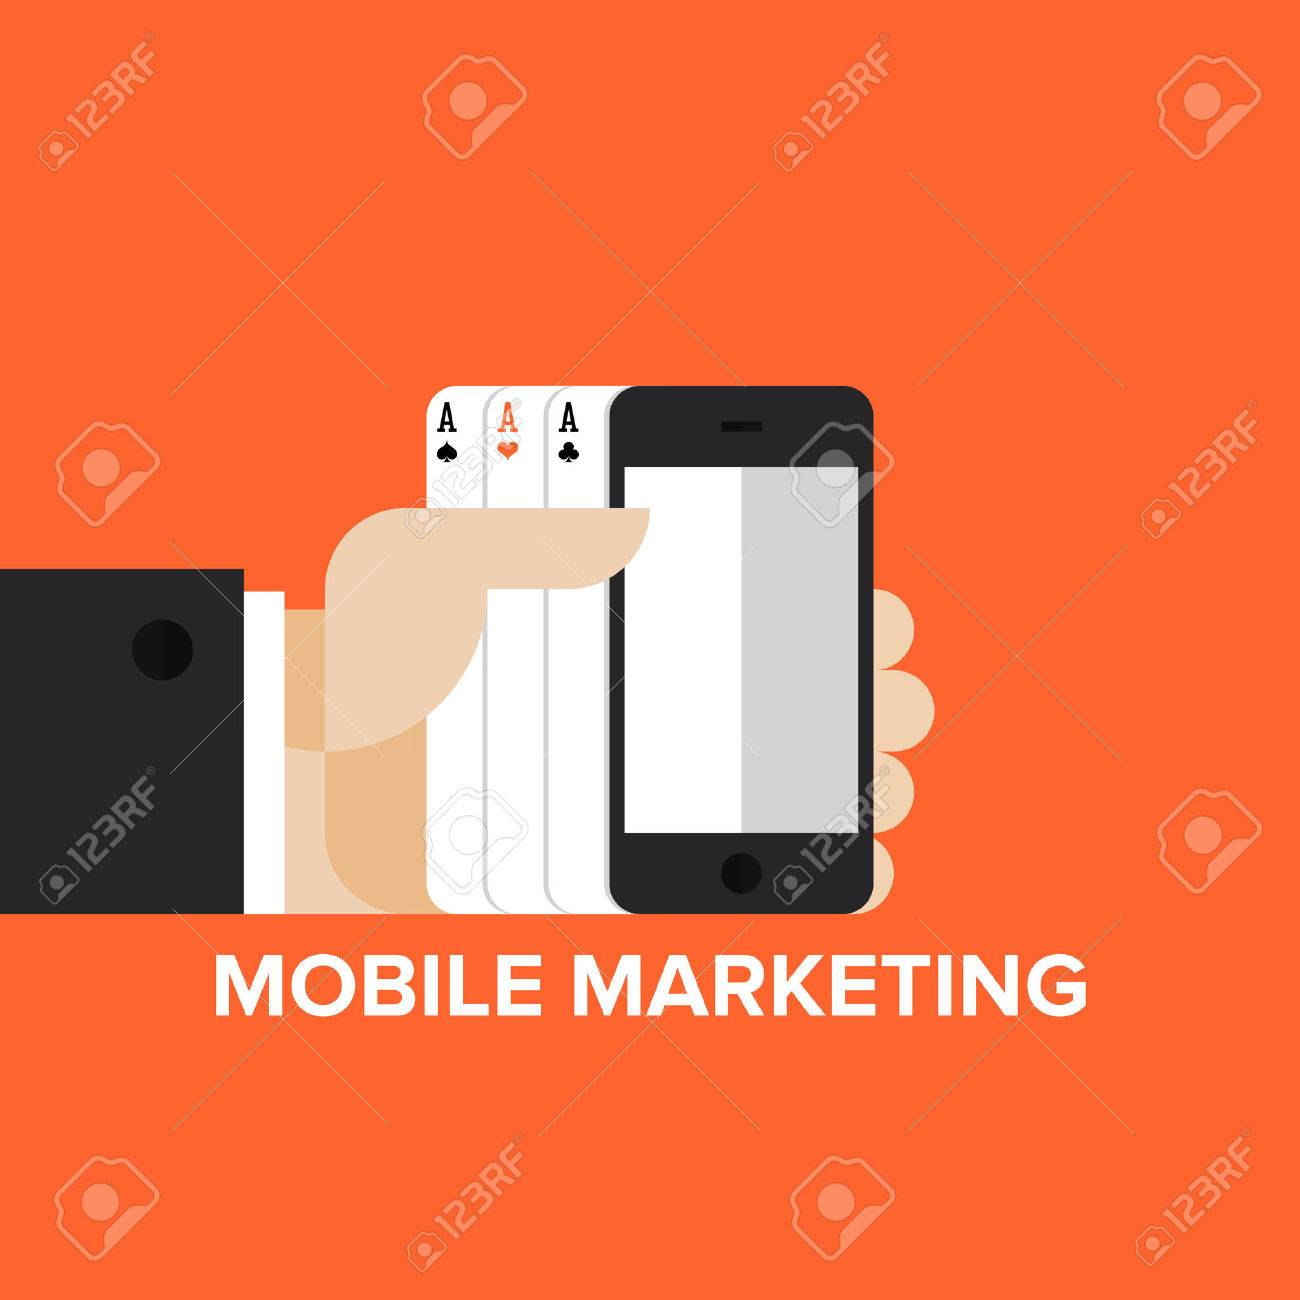 Mobile marketing strategy, sms and text advertising and mobile apps in-game advertisement. Flat design style modern vector illustration concept. Isolated on stylish background. Stock Vector - 28469408